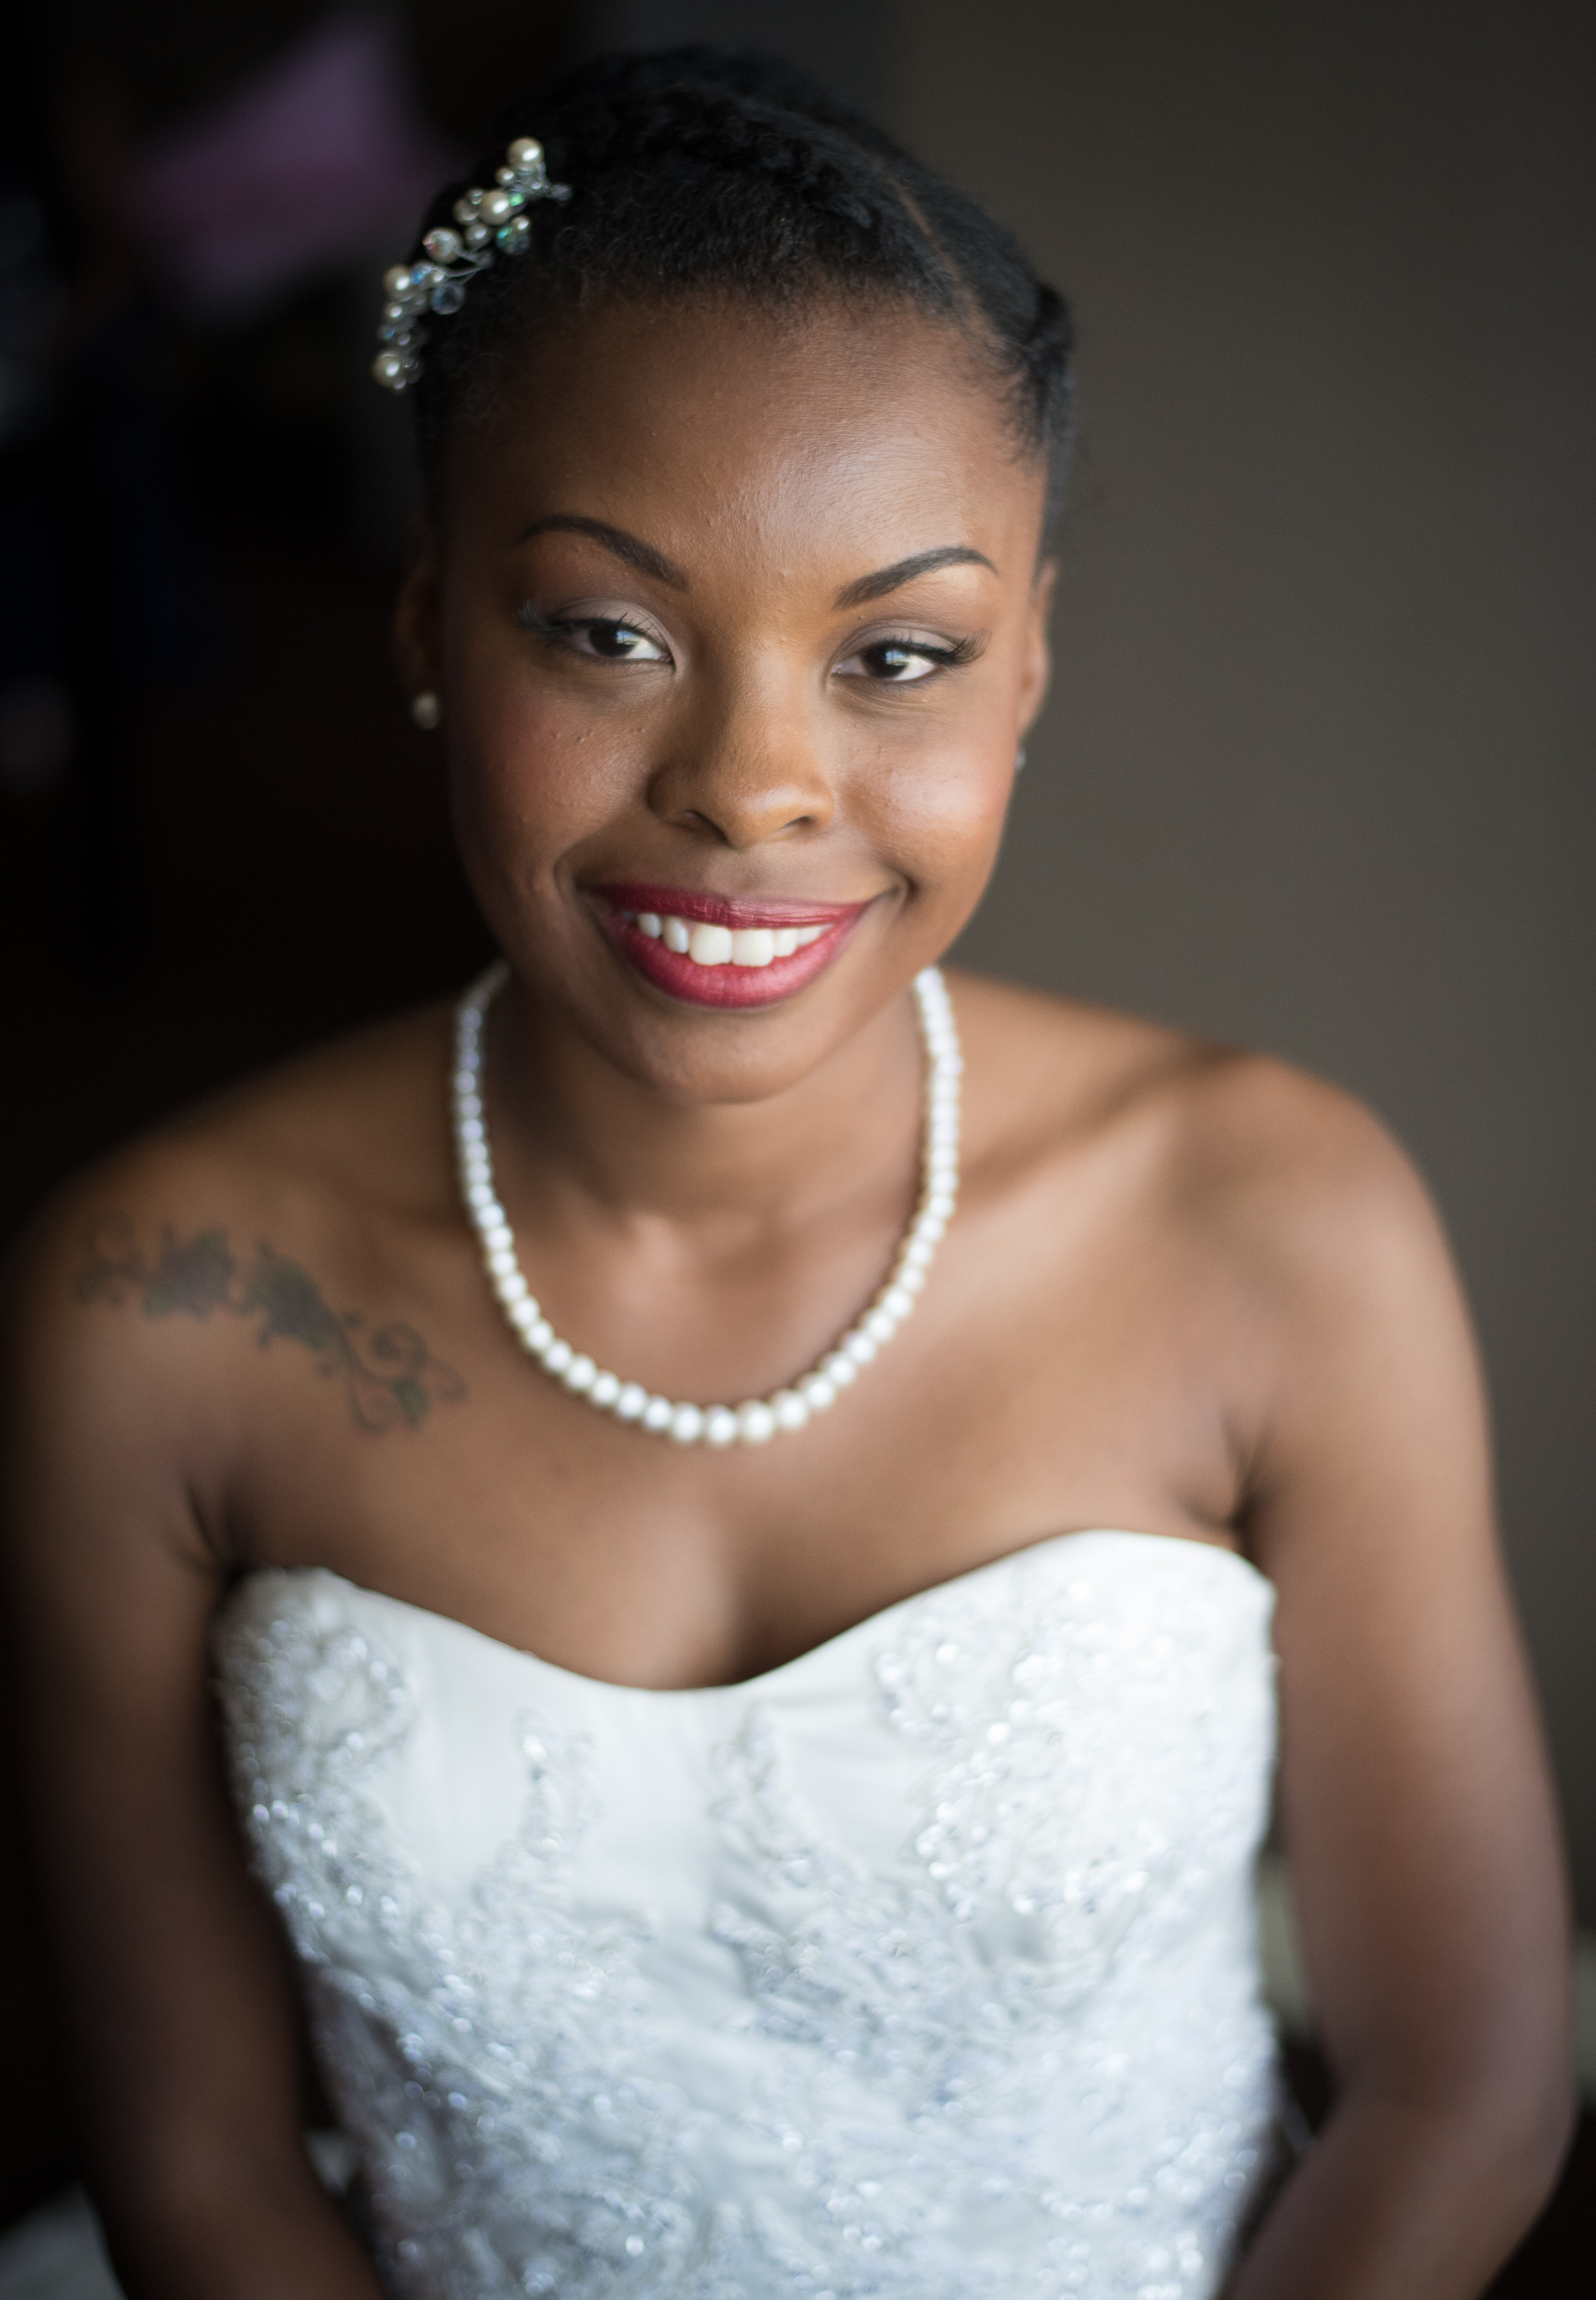 dallas-jewish-wedding-donnell-perry-photo-26